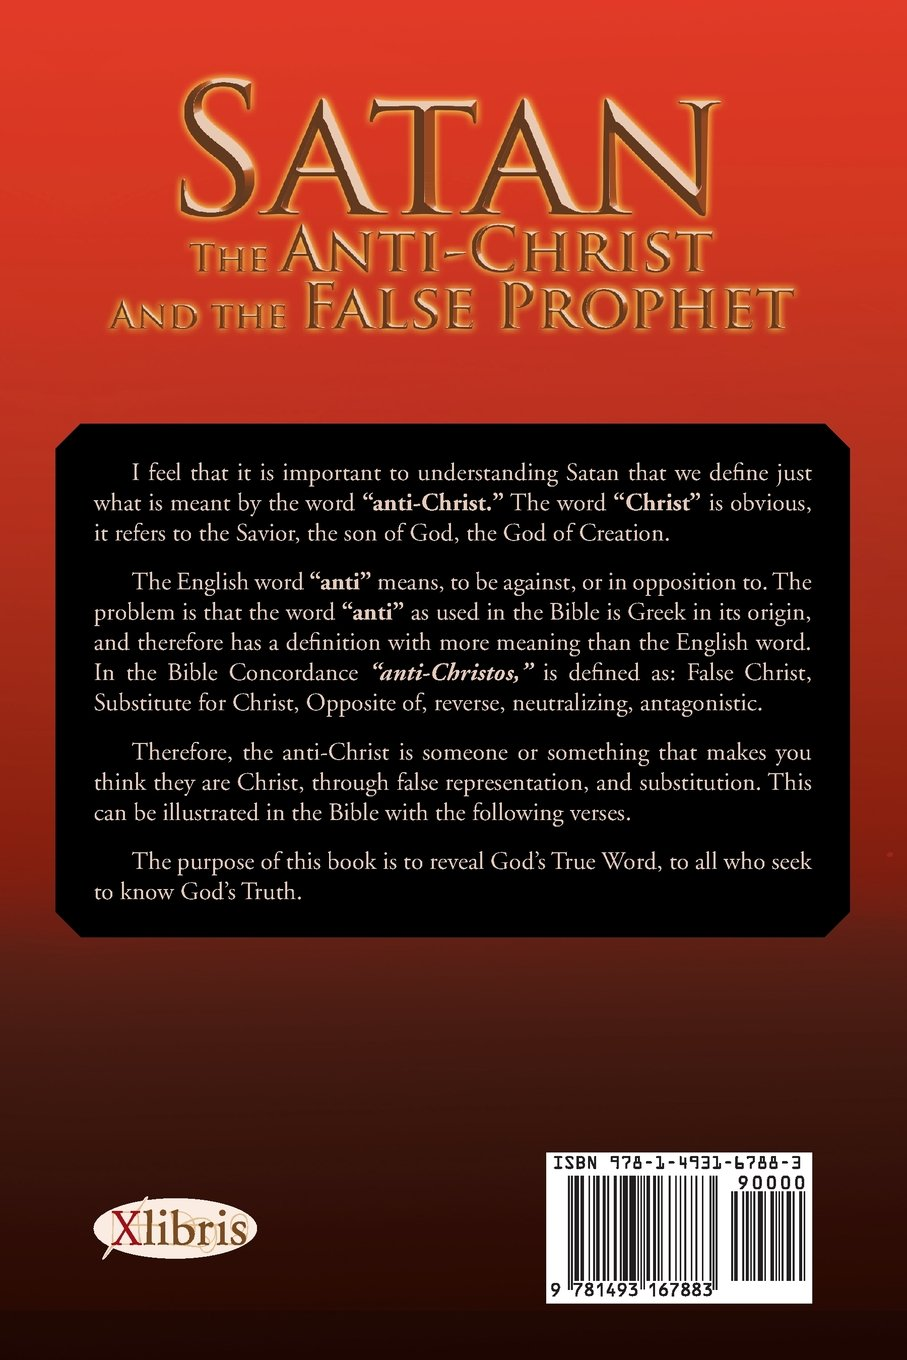 Satan The Anti-Christ And the False Prophet: Larry I